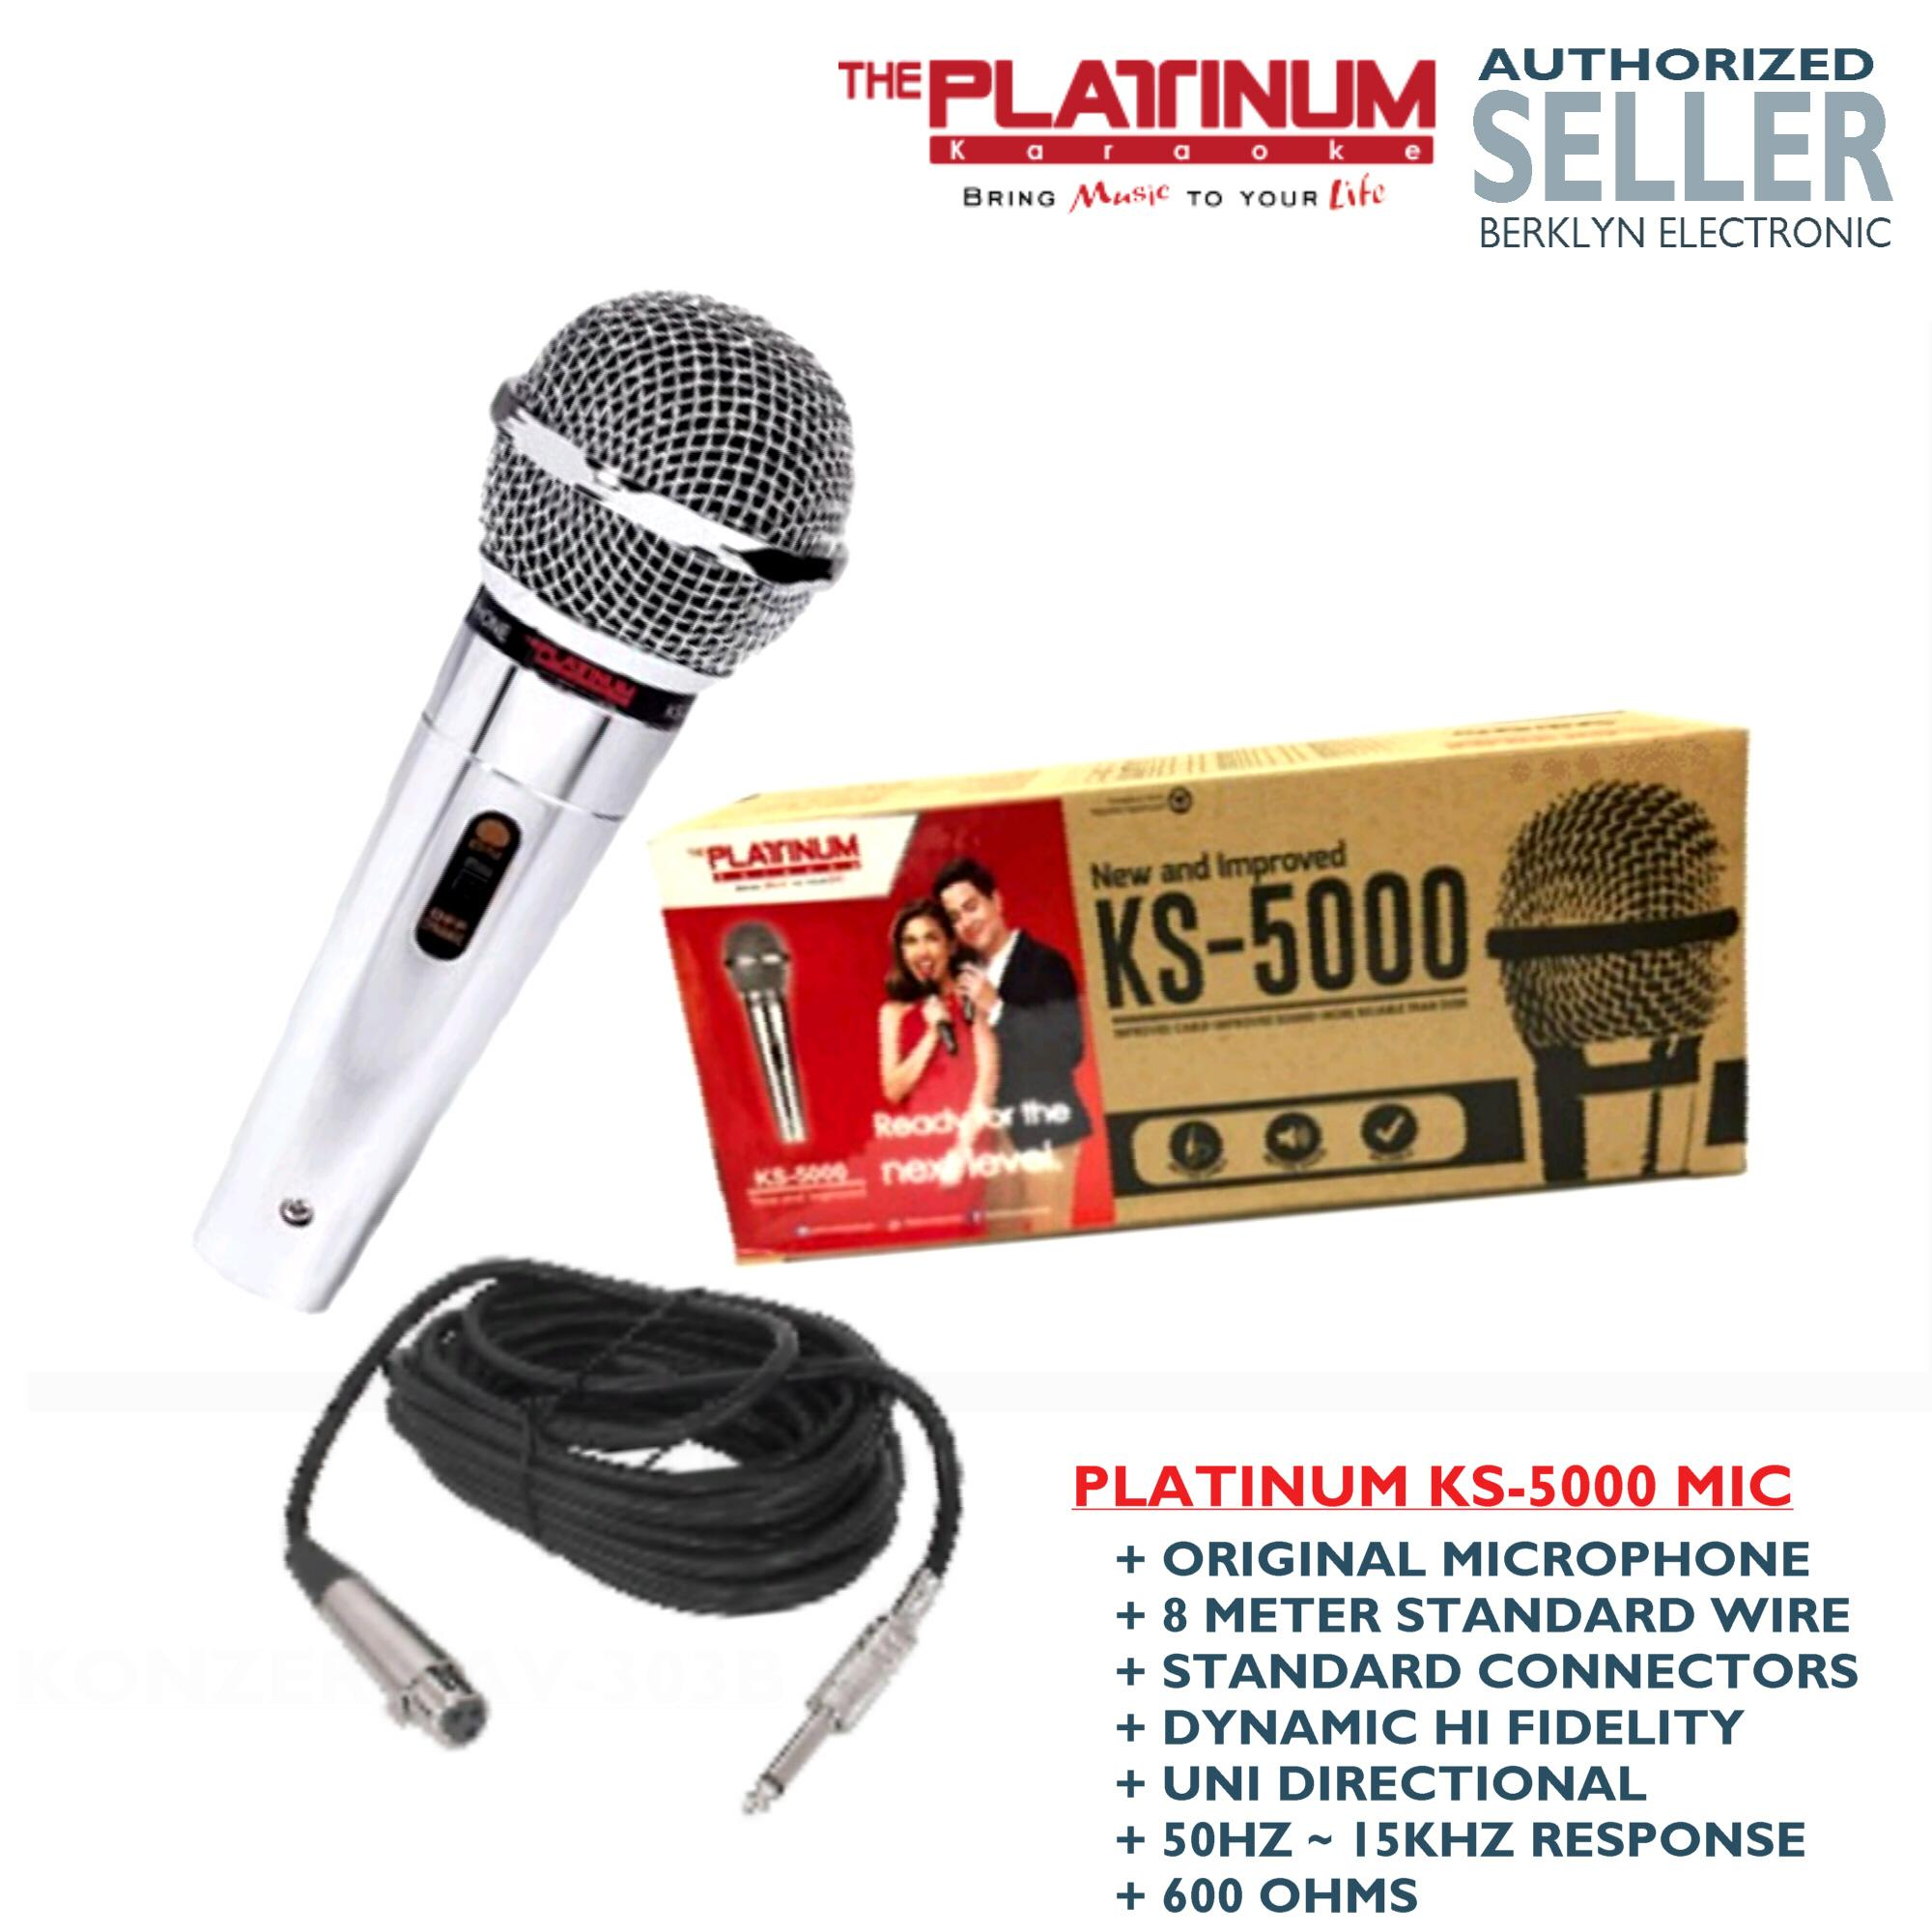 Platinum Philippines Karaoke Player For Sale Prices K40 Mic Wiring Diagram Ks 5000 Dynamic Microphone 8 Meter Standard Cable